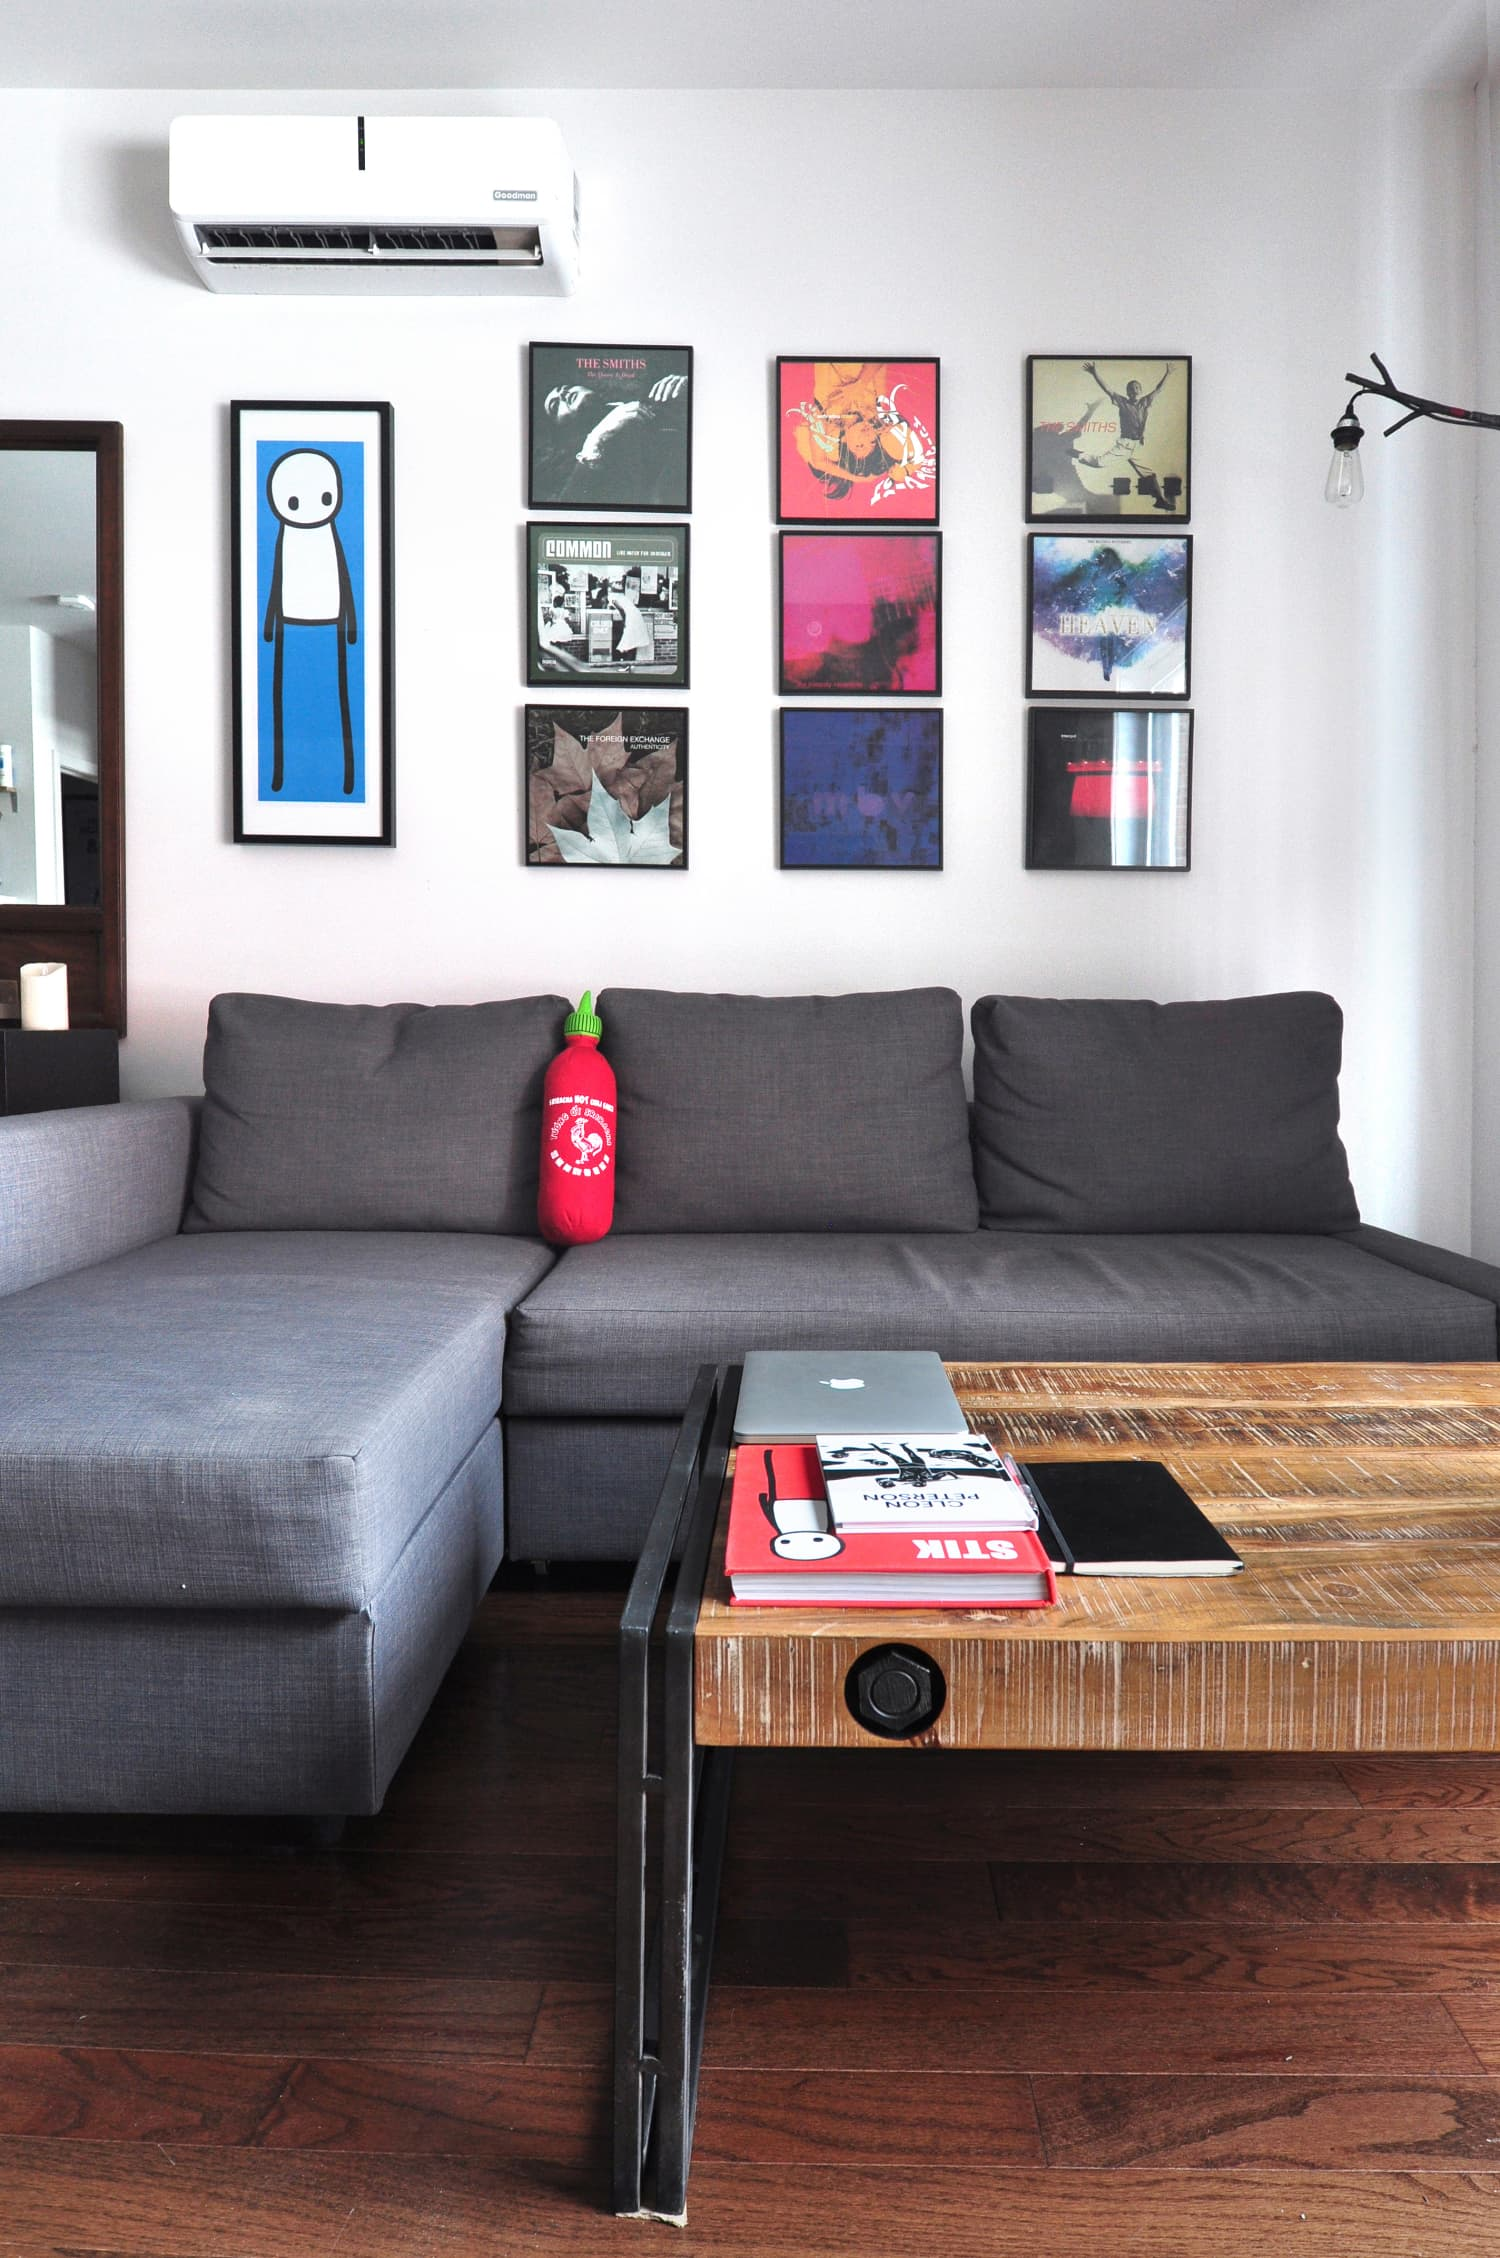 Get the Look: Minimal Industrial Style With DIY Touches